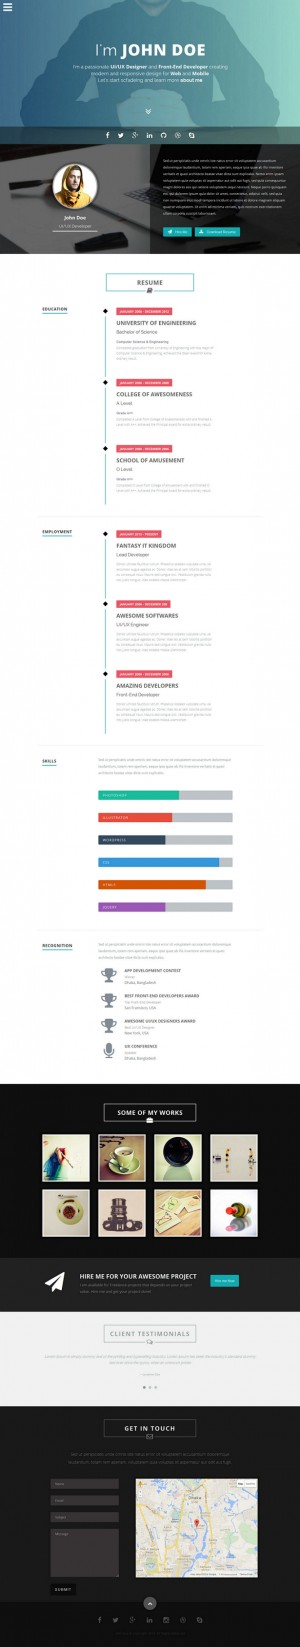 Intima is a minimalist, elegant and responsive resume HTML5 template for any kind of professiona ...